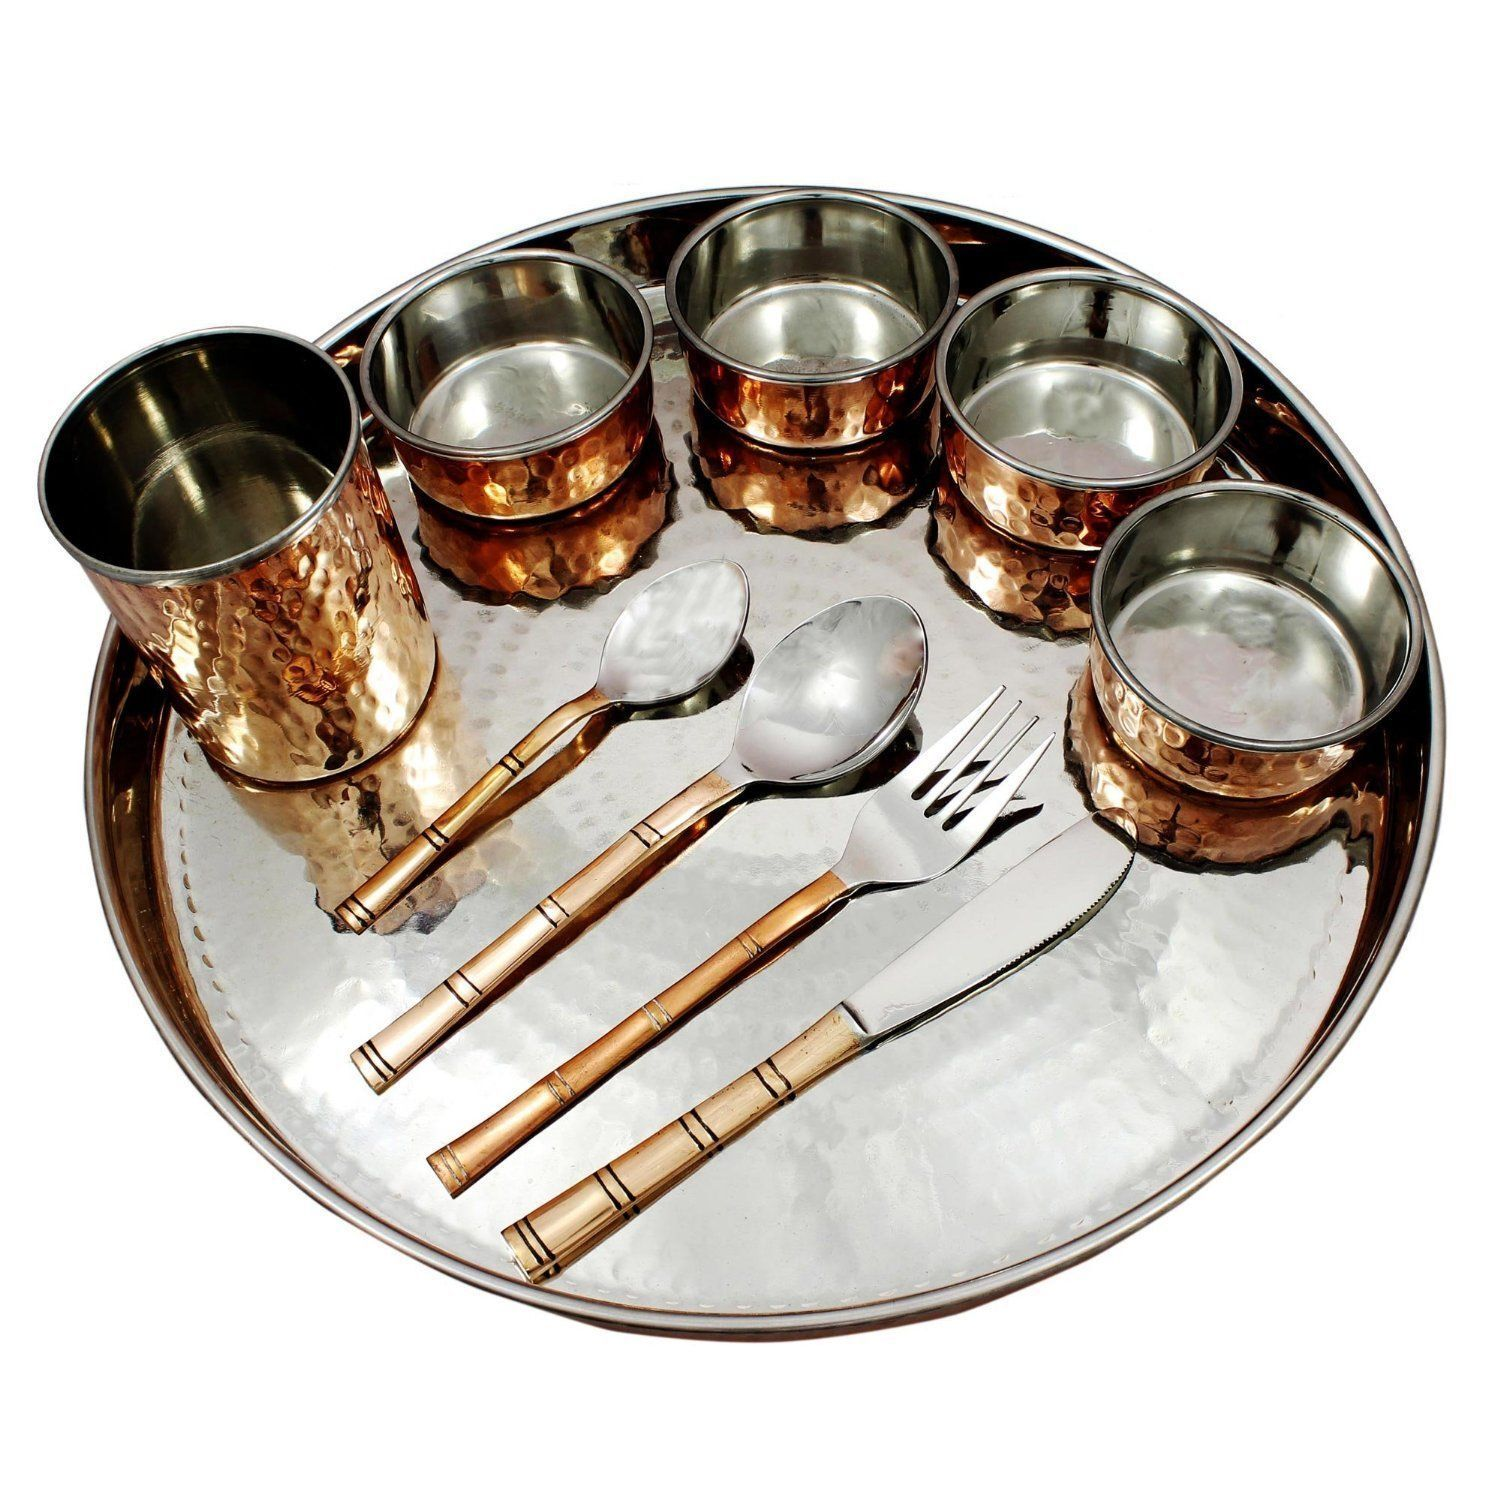 Dinnerware Stainless Steel Copper Traditional Dinner Set for Indian Food Plate